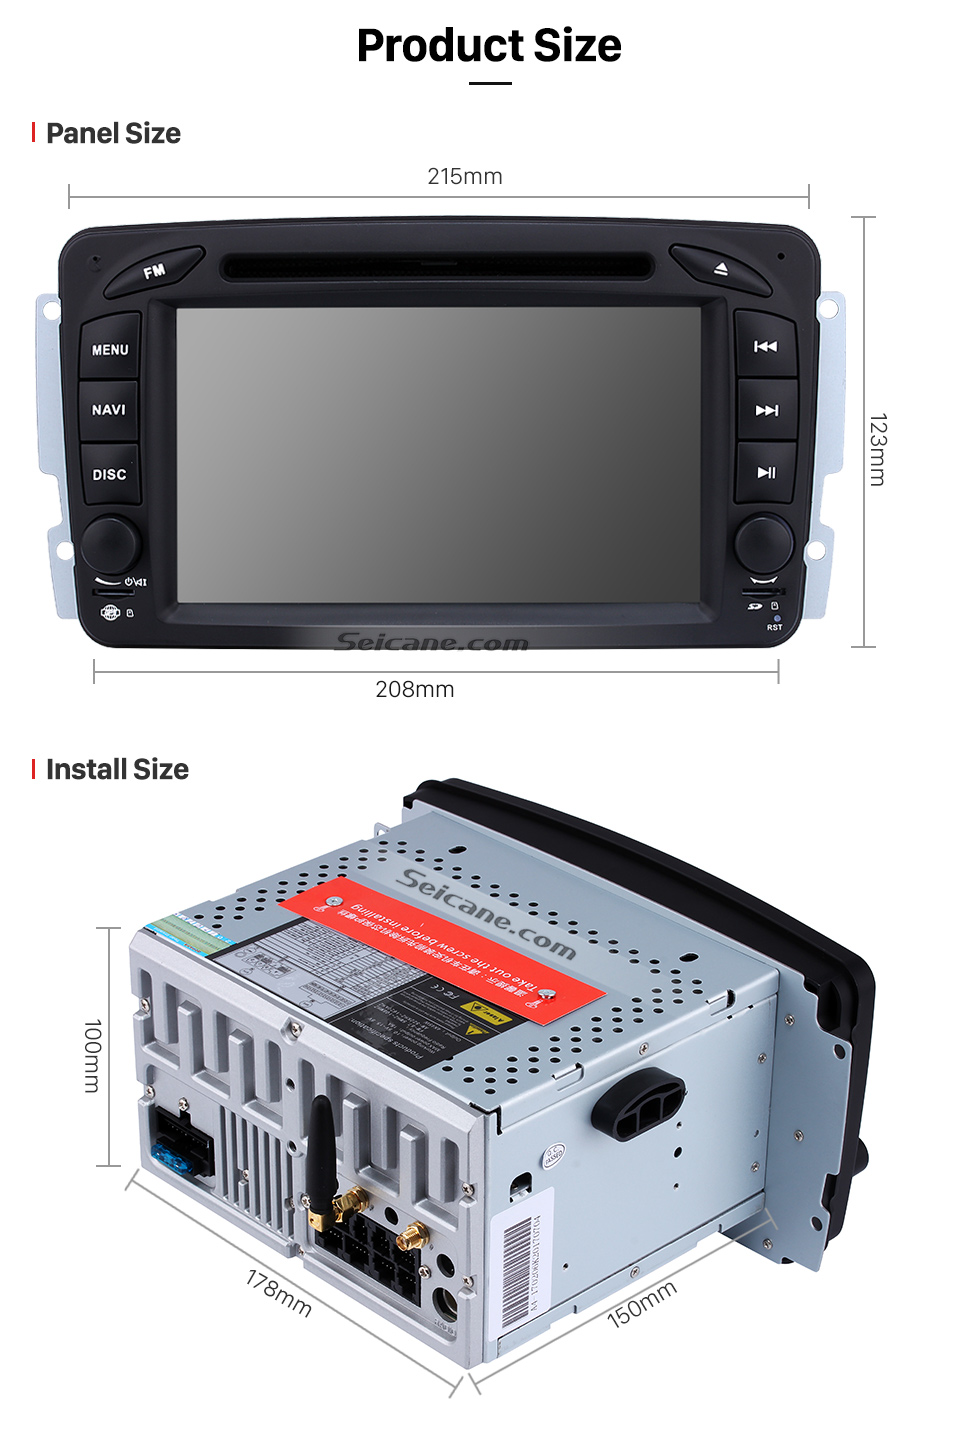 Seicane Double Din Android 8.0 Bluetooth DVD In Dash GPS Stereo for 2004 2005 2006 Mercedes Benz Viano Vito with 3G WiFi Radio Tuner Mirror Link OBD2 HD 1024*600 Multi-touch Screen